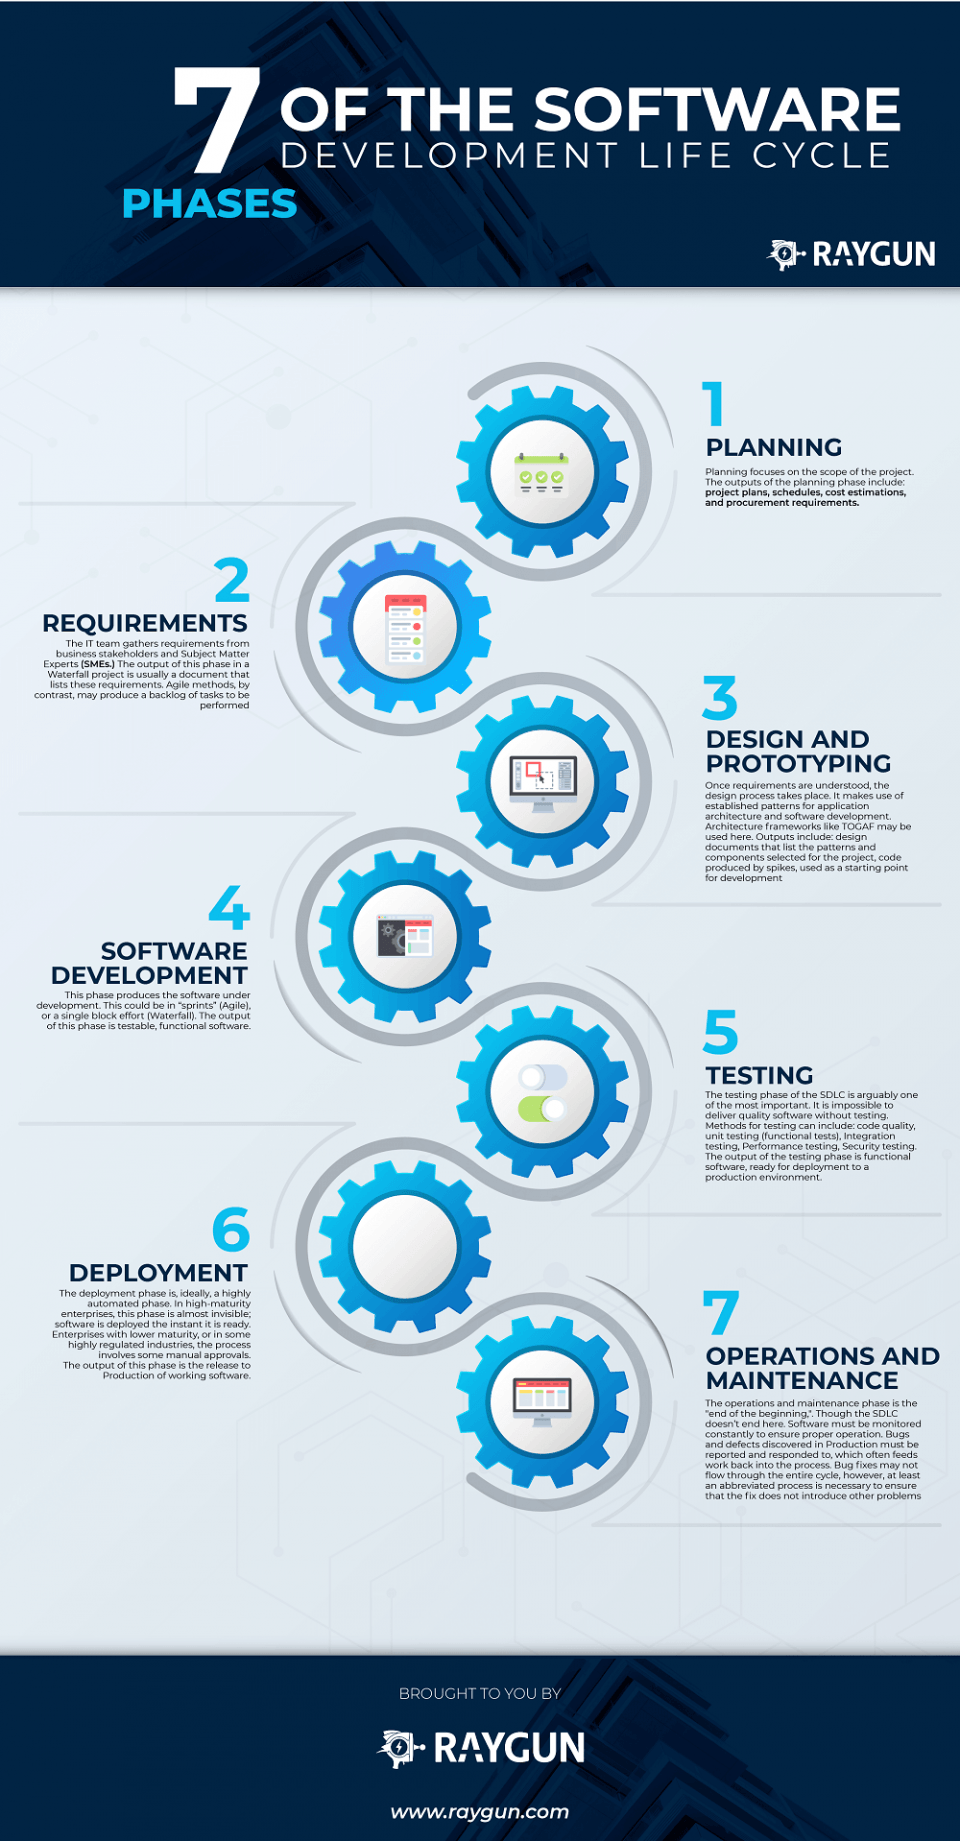 7 Phases Of Software Development Life Cycle Infographic - e-Learning